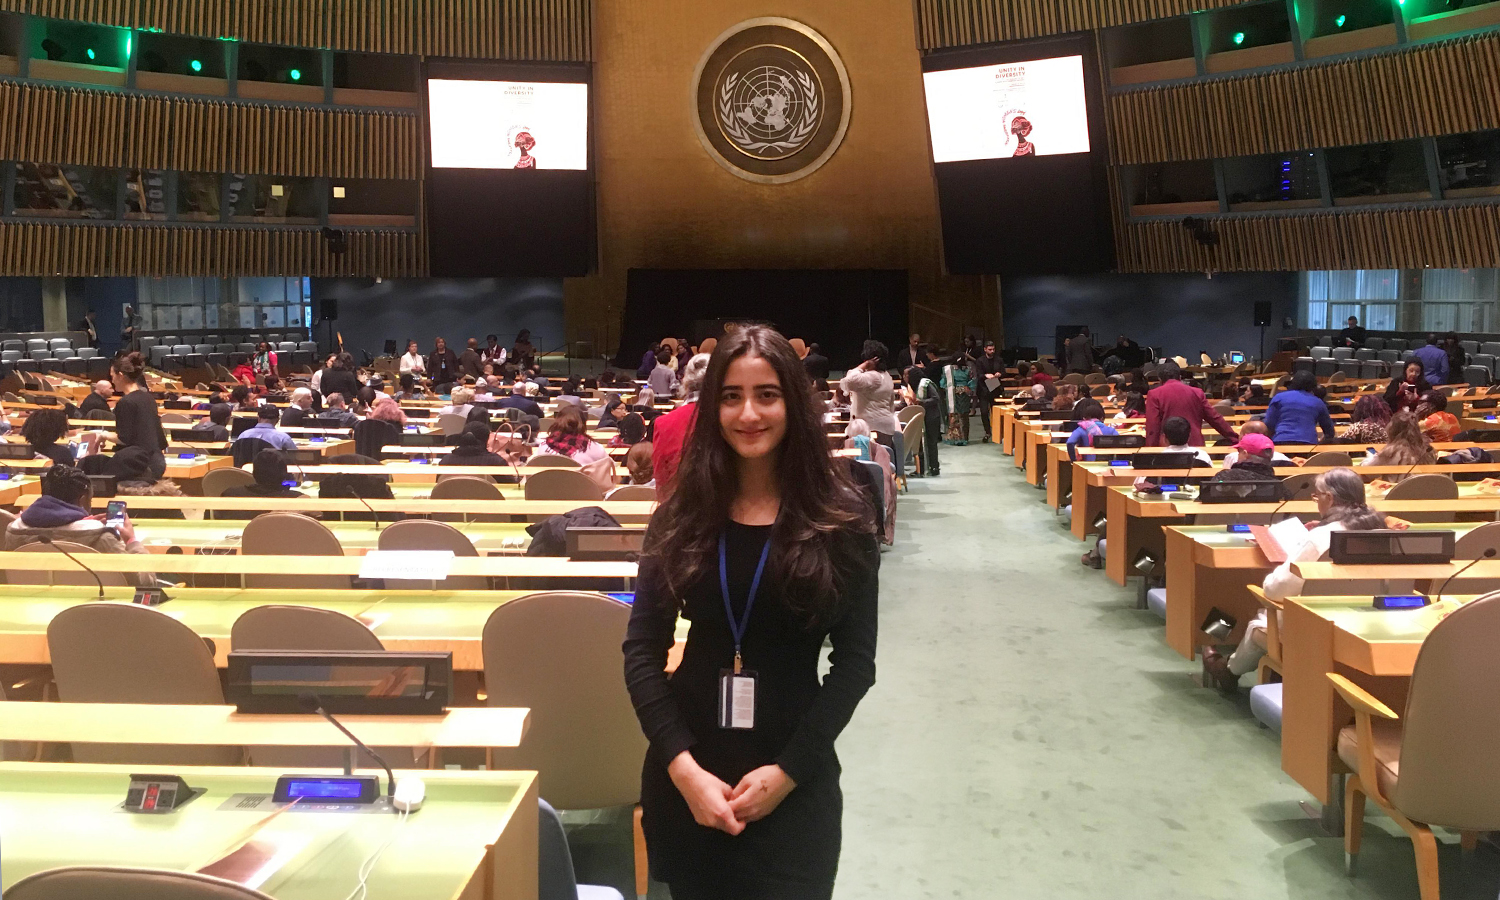 Duniya Syed '20 poses at the United Nations General Assembly. Syed was invited to speak at the 62nd session of the commission on the status of women to discuss women's issues in her home country of Afghanistan.